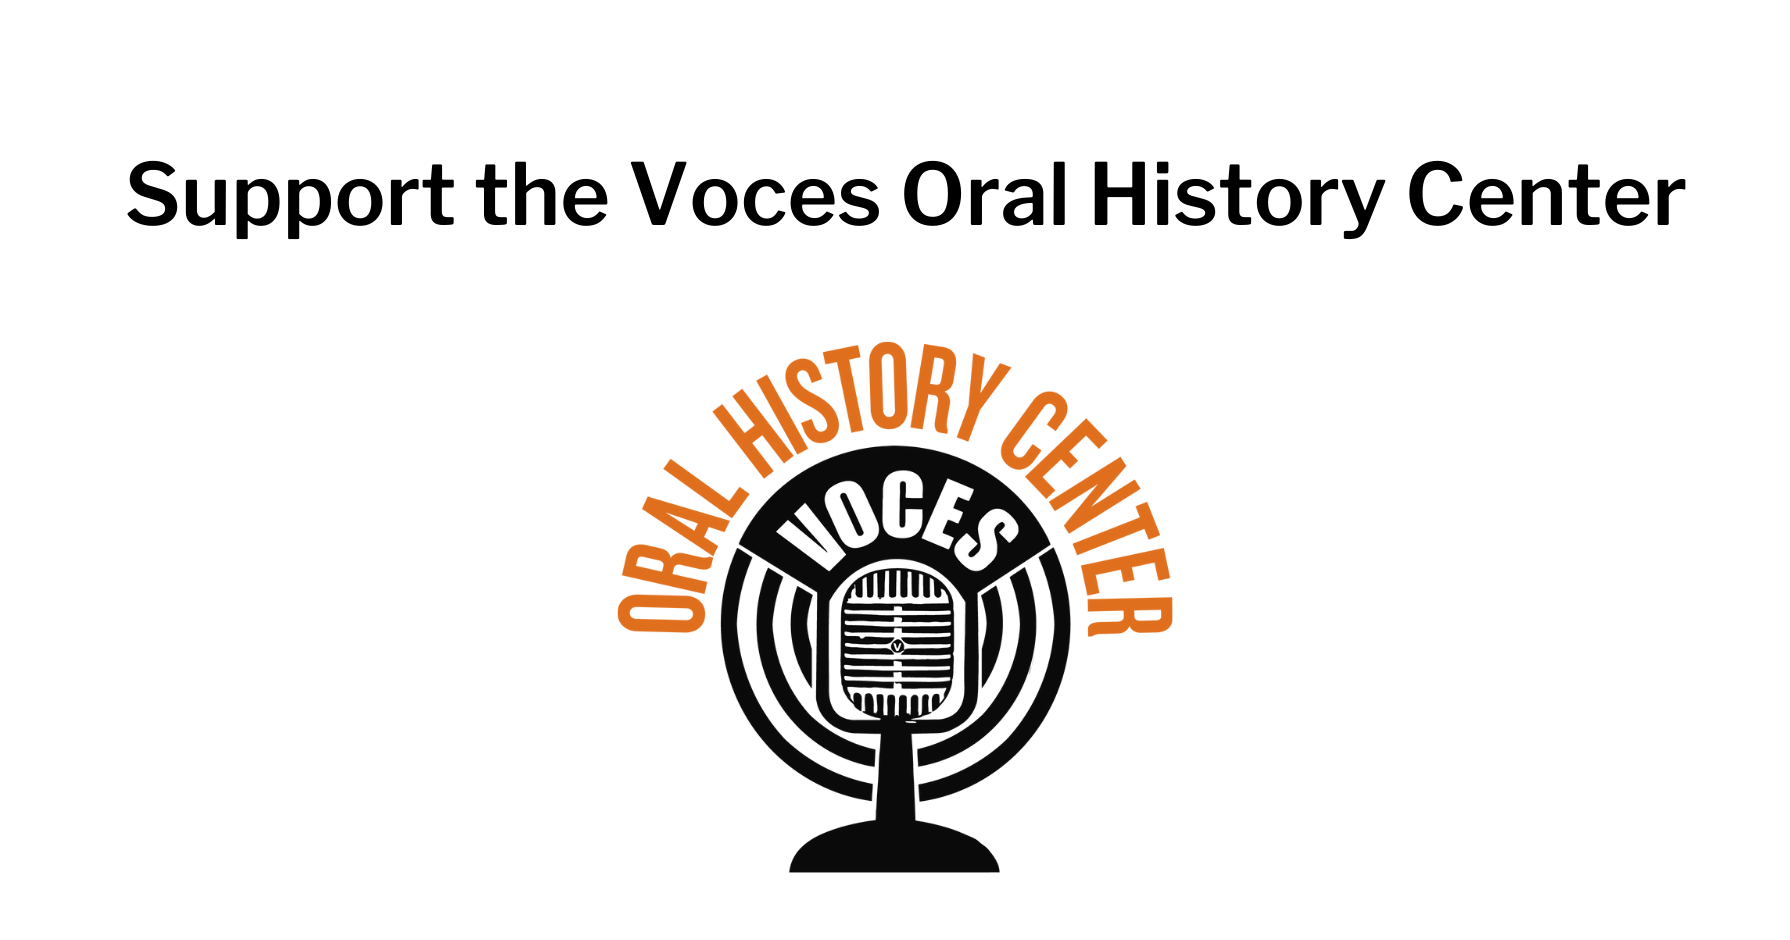 Support The Voces Oral History Center. Microphone logo below.